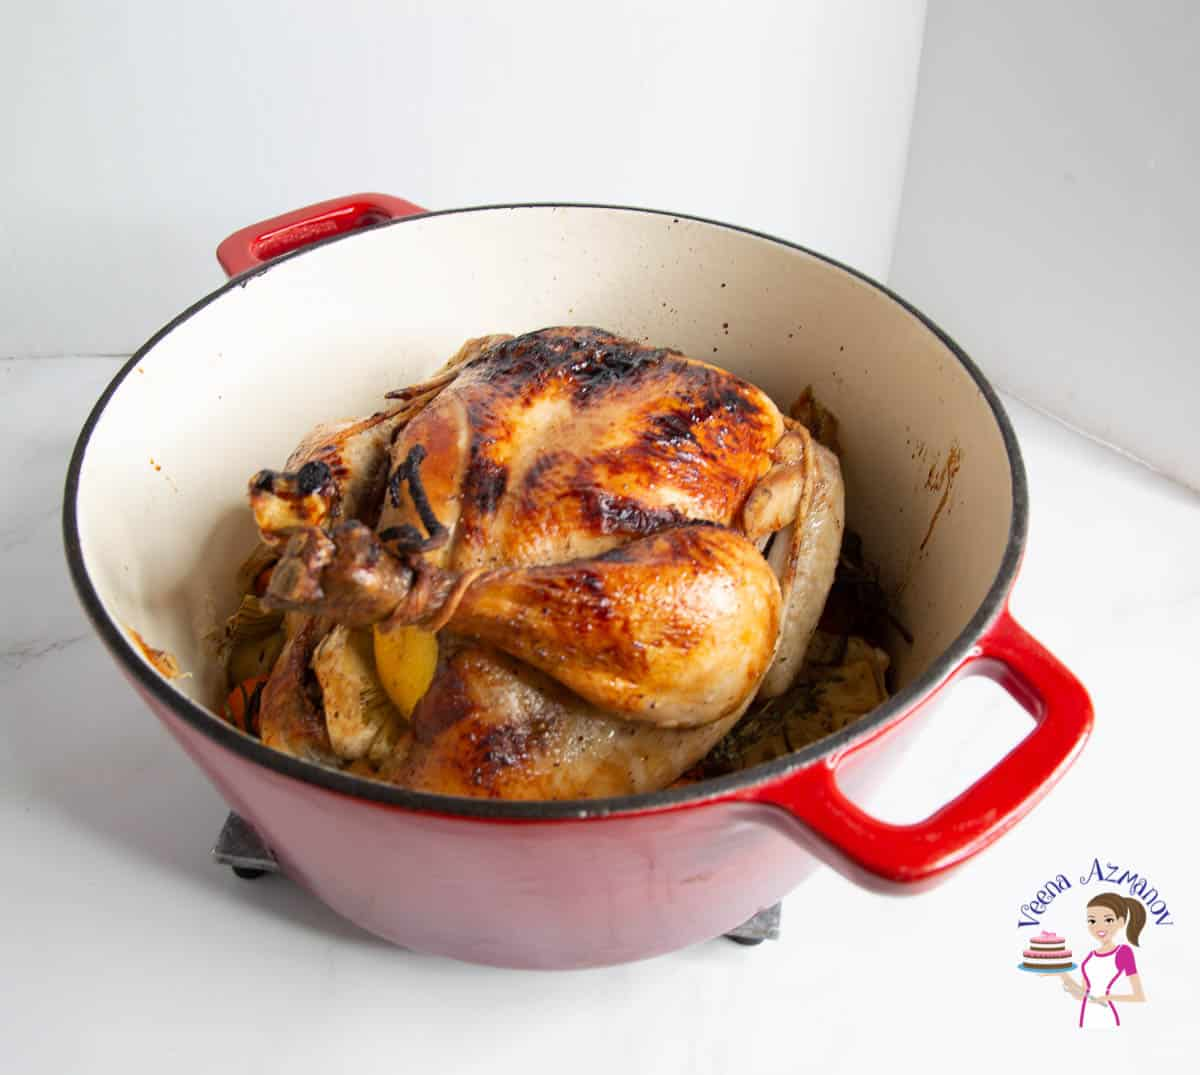 A full chicken roasted in a dutch oven